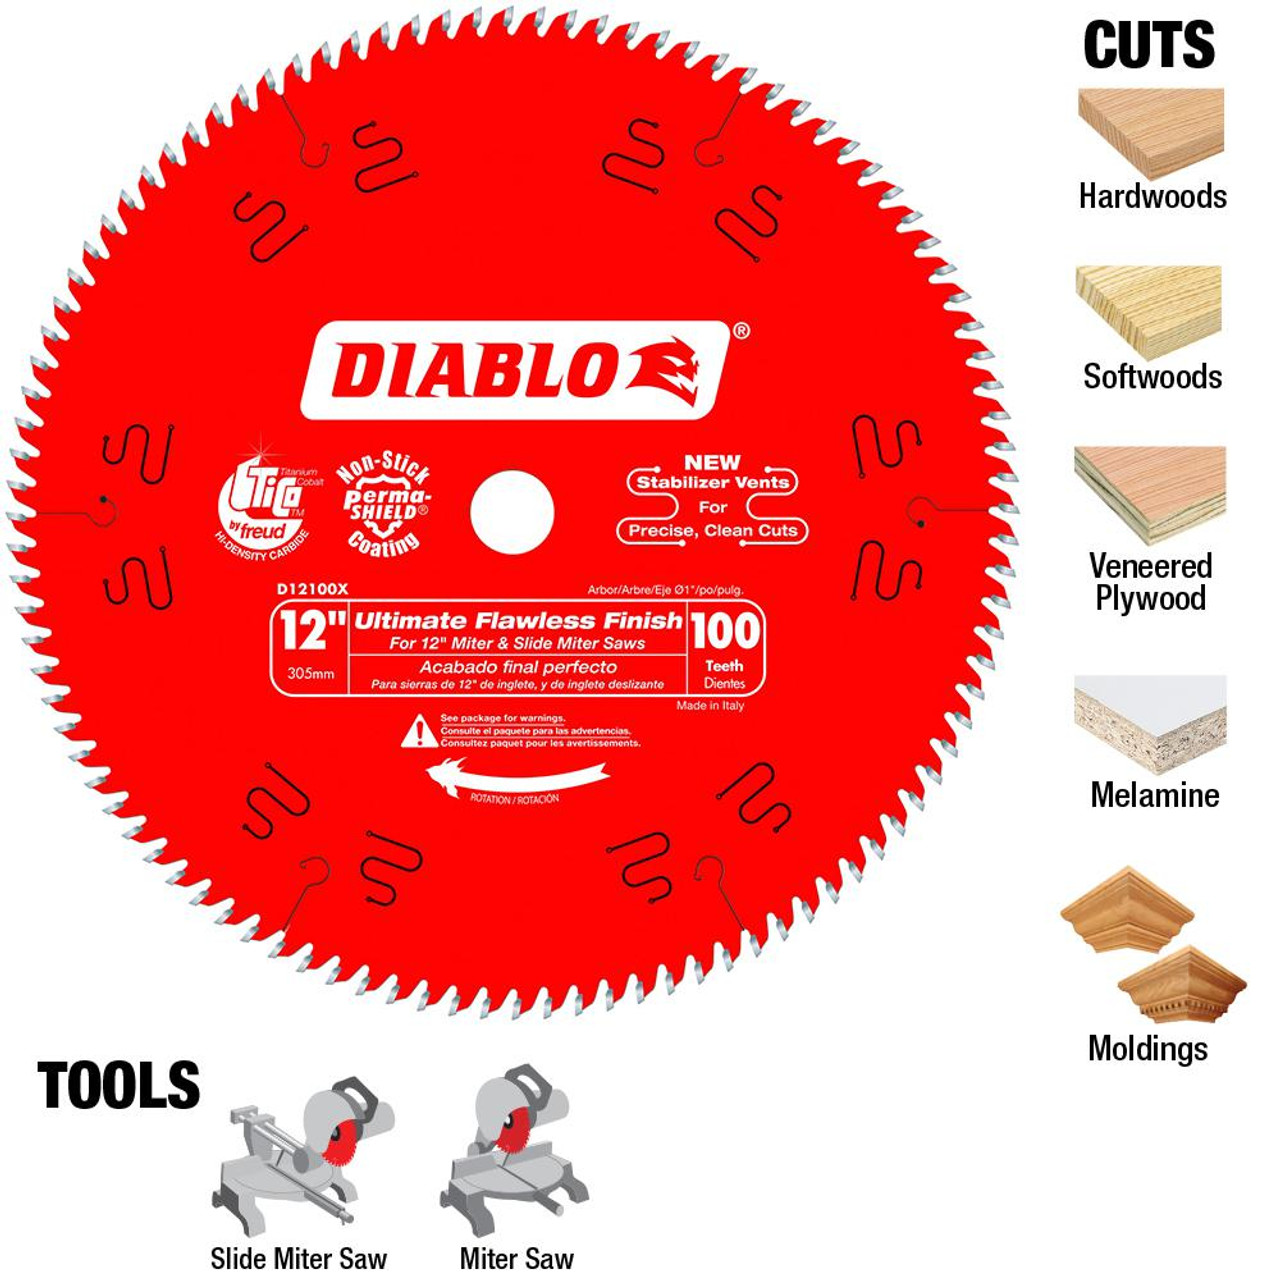 Freud Diablo D12100X 12 in. x 100-Tooth Ultimate Flawless Finish Saw Blade